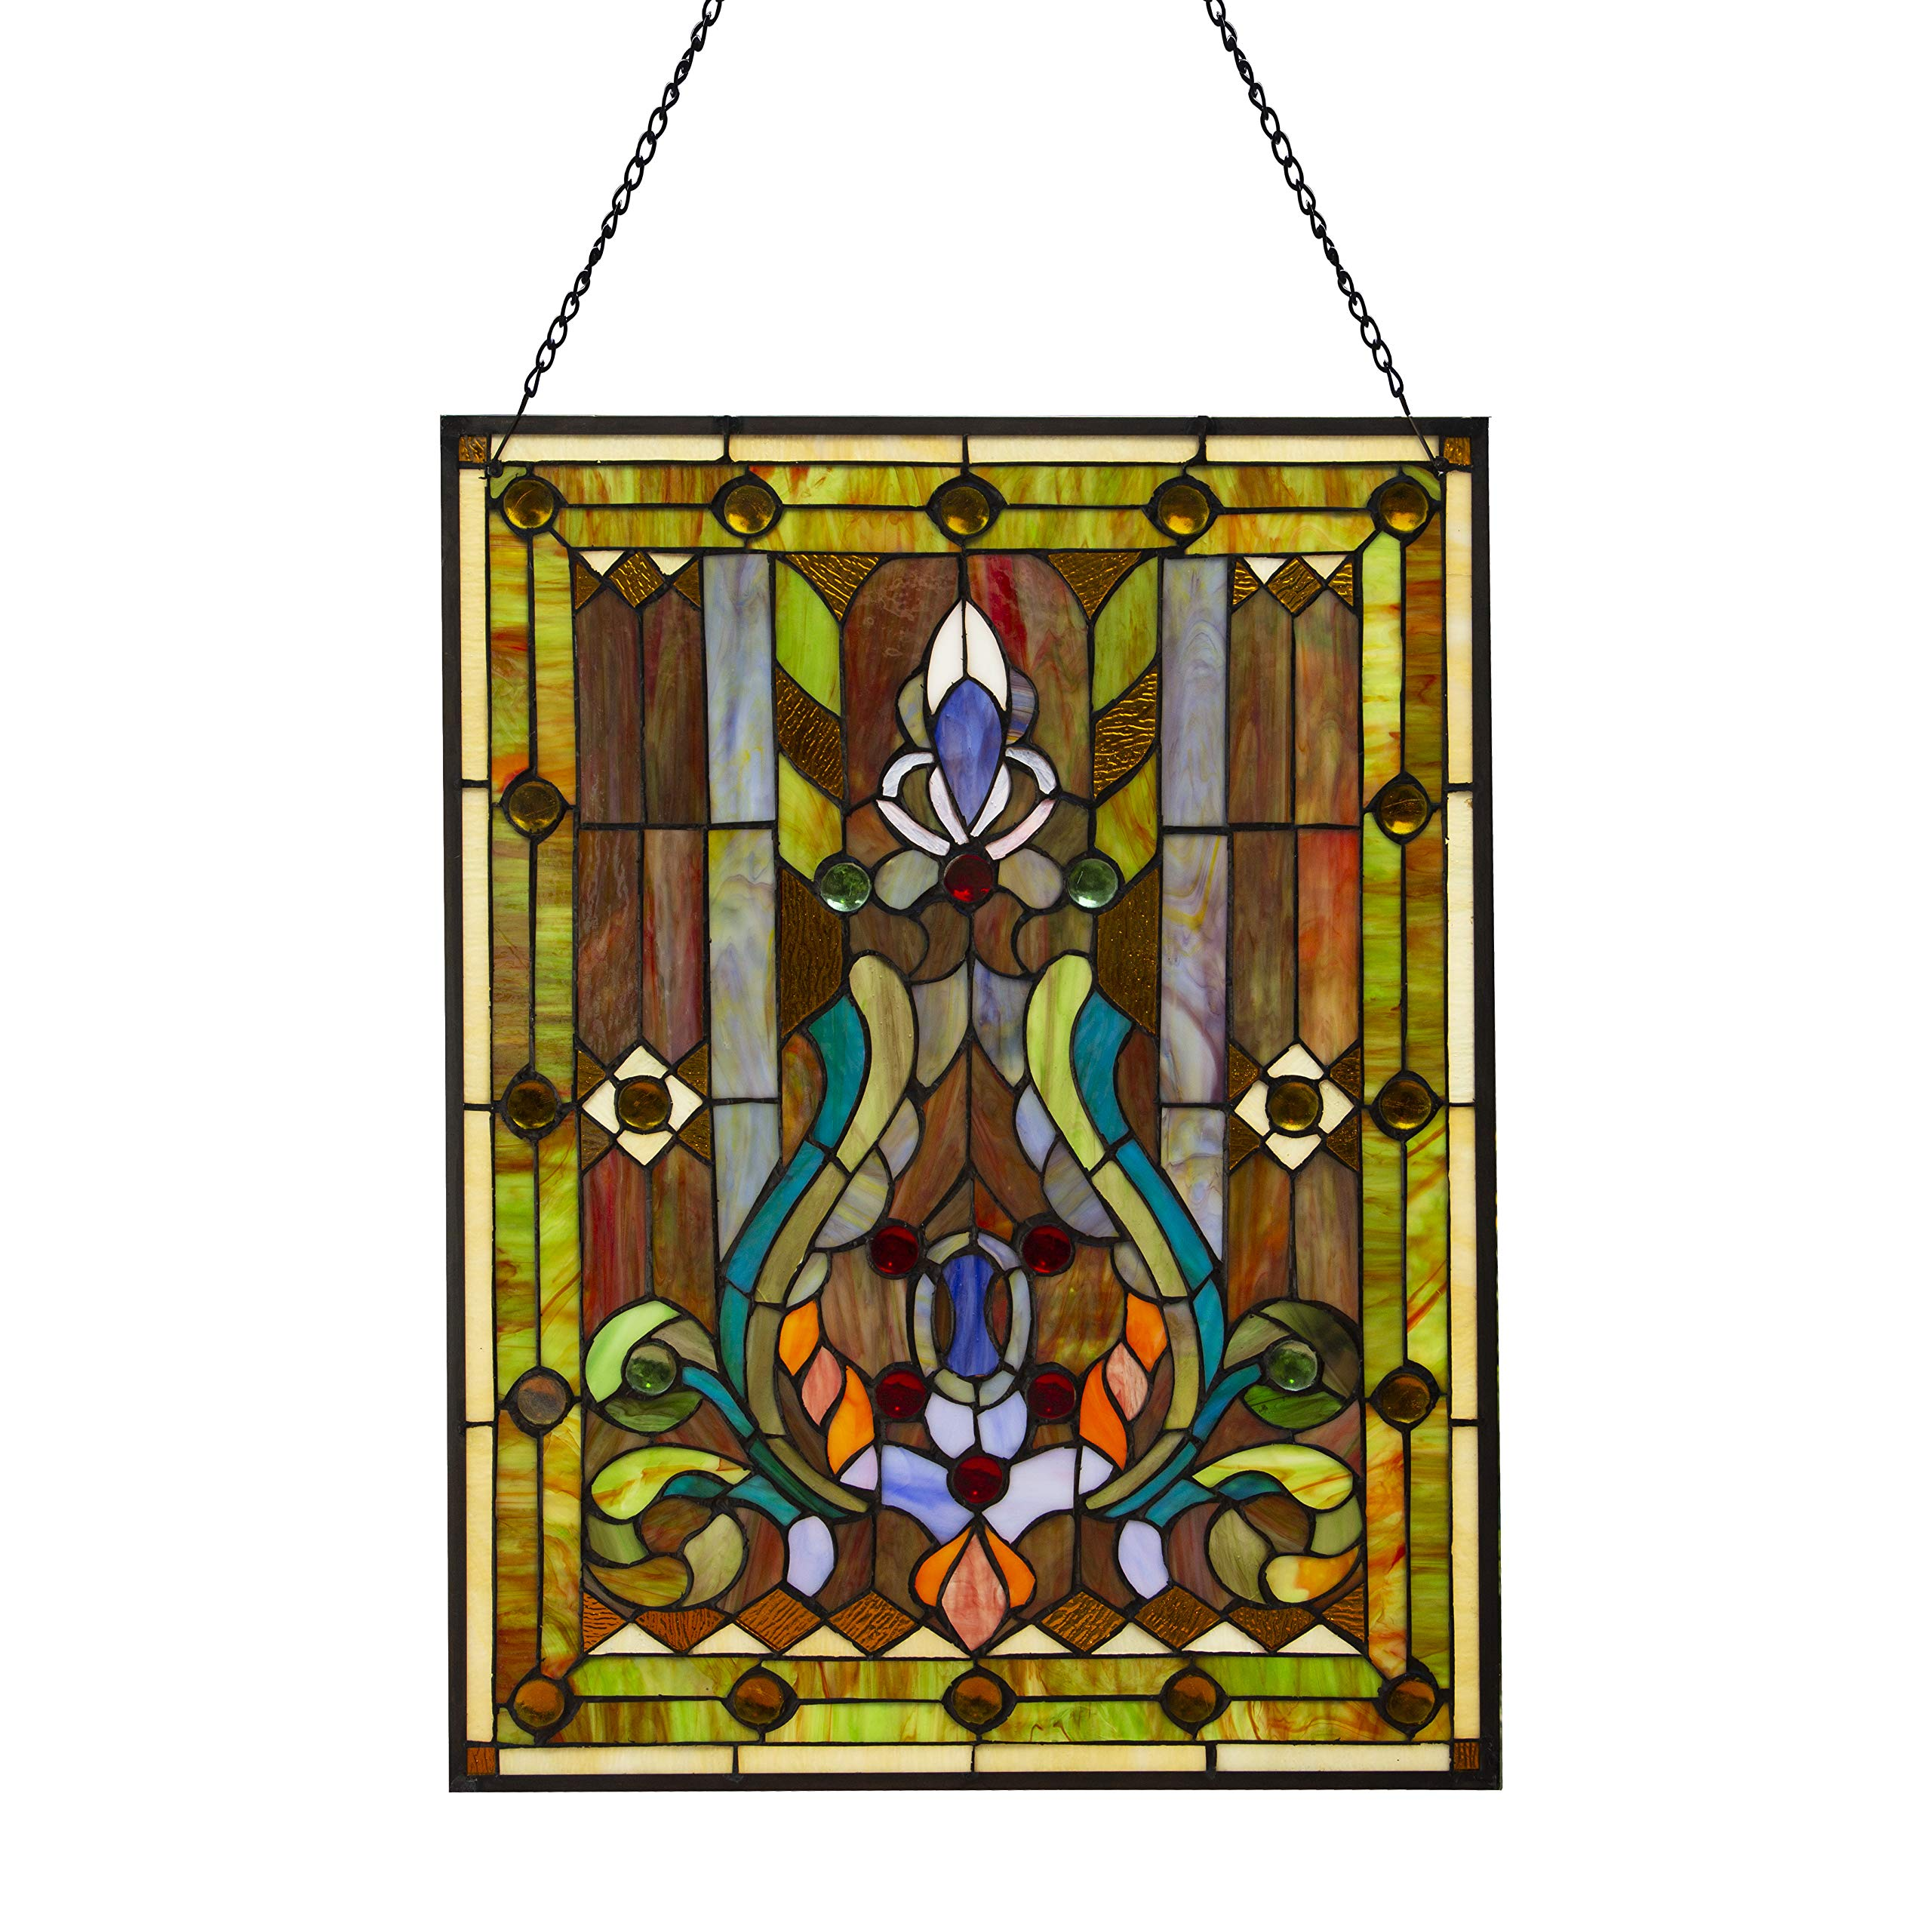 River of Goods Fleur De Lis 24.5 Inch High Stained Glass Window Panel, Brown, Yellow, Green, Blue by River of Goods